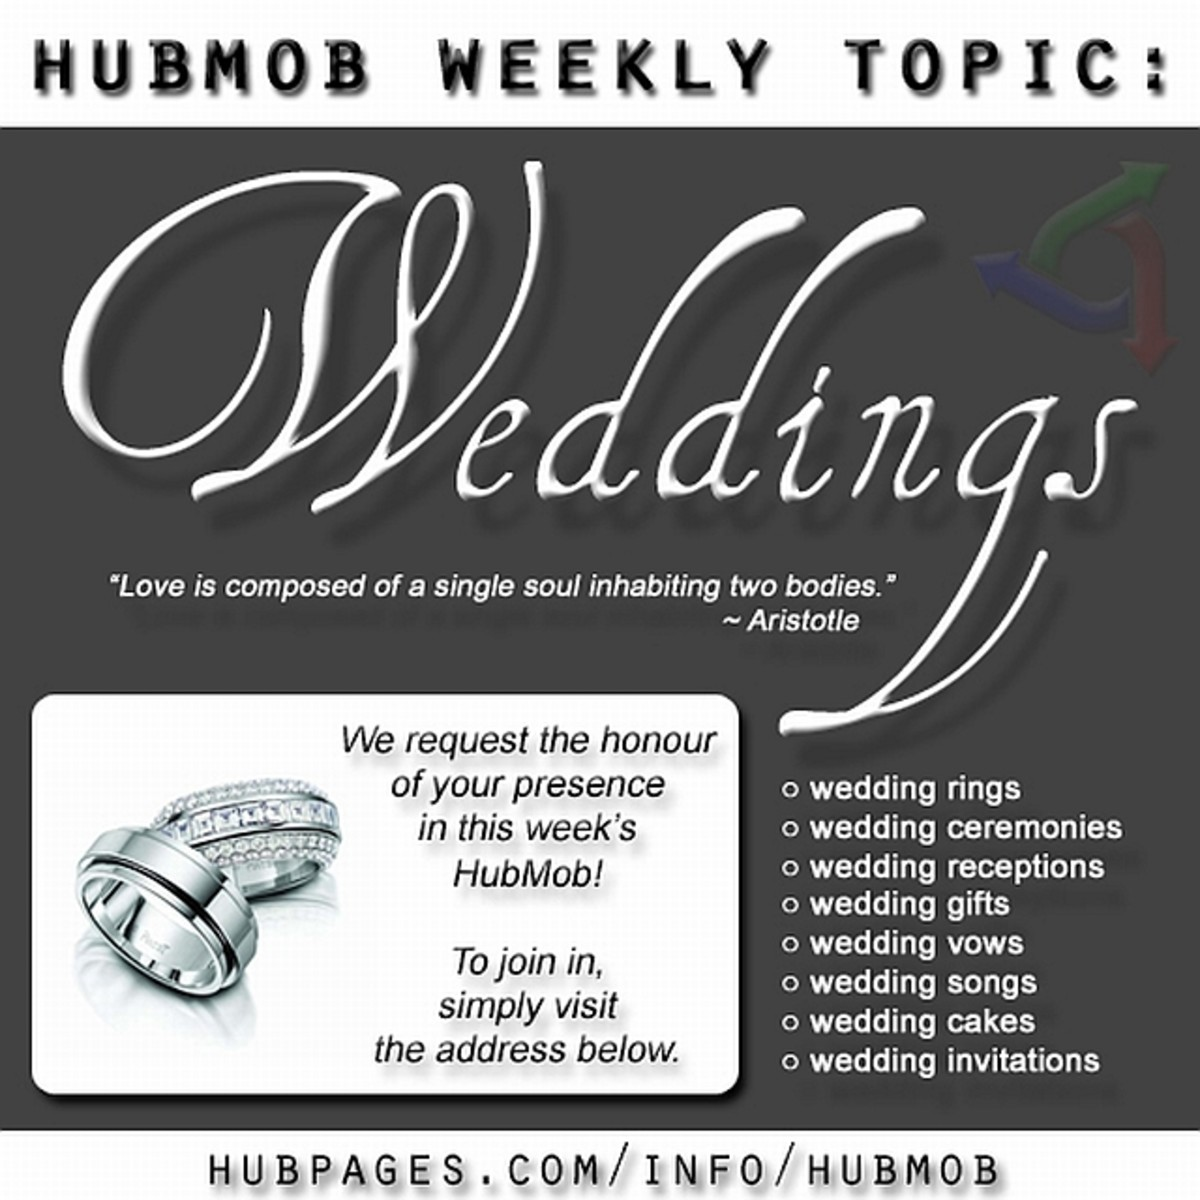 Hubmob: Weddings